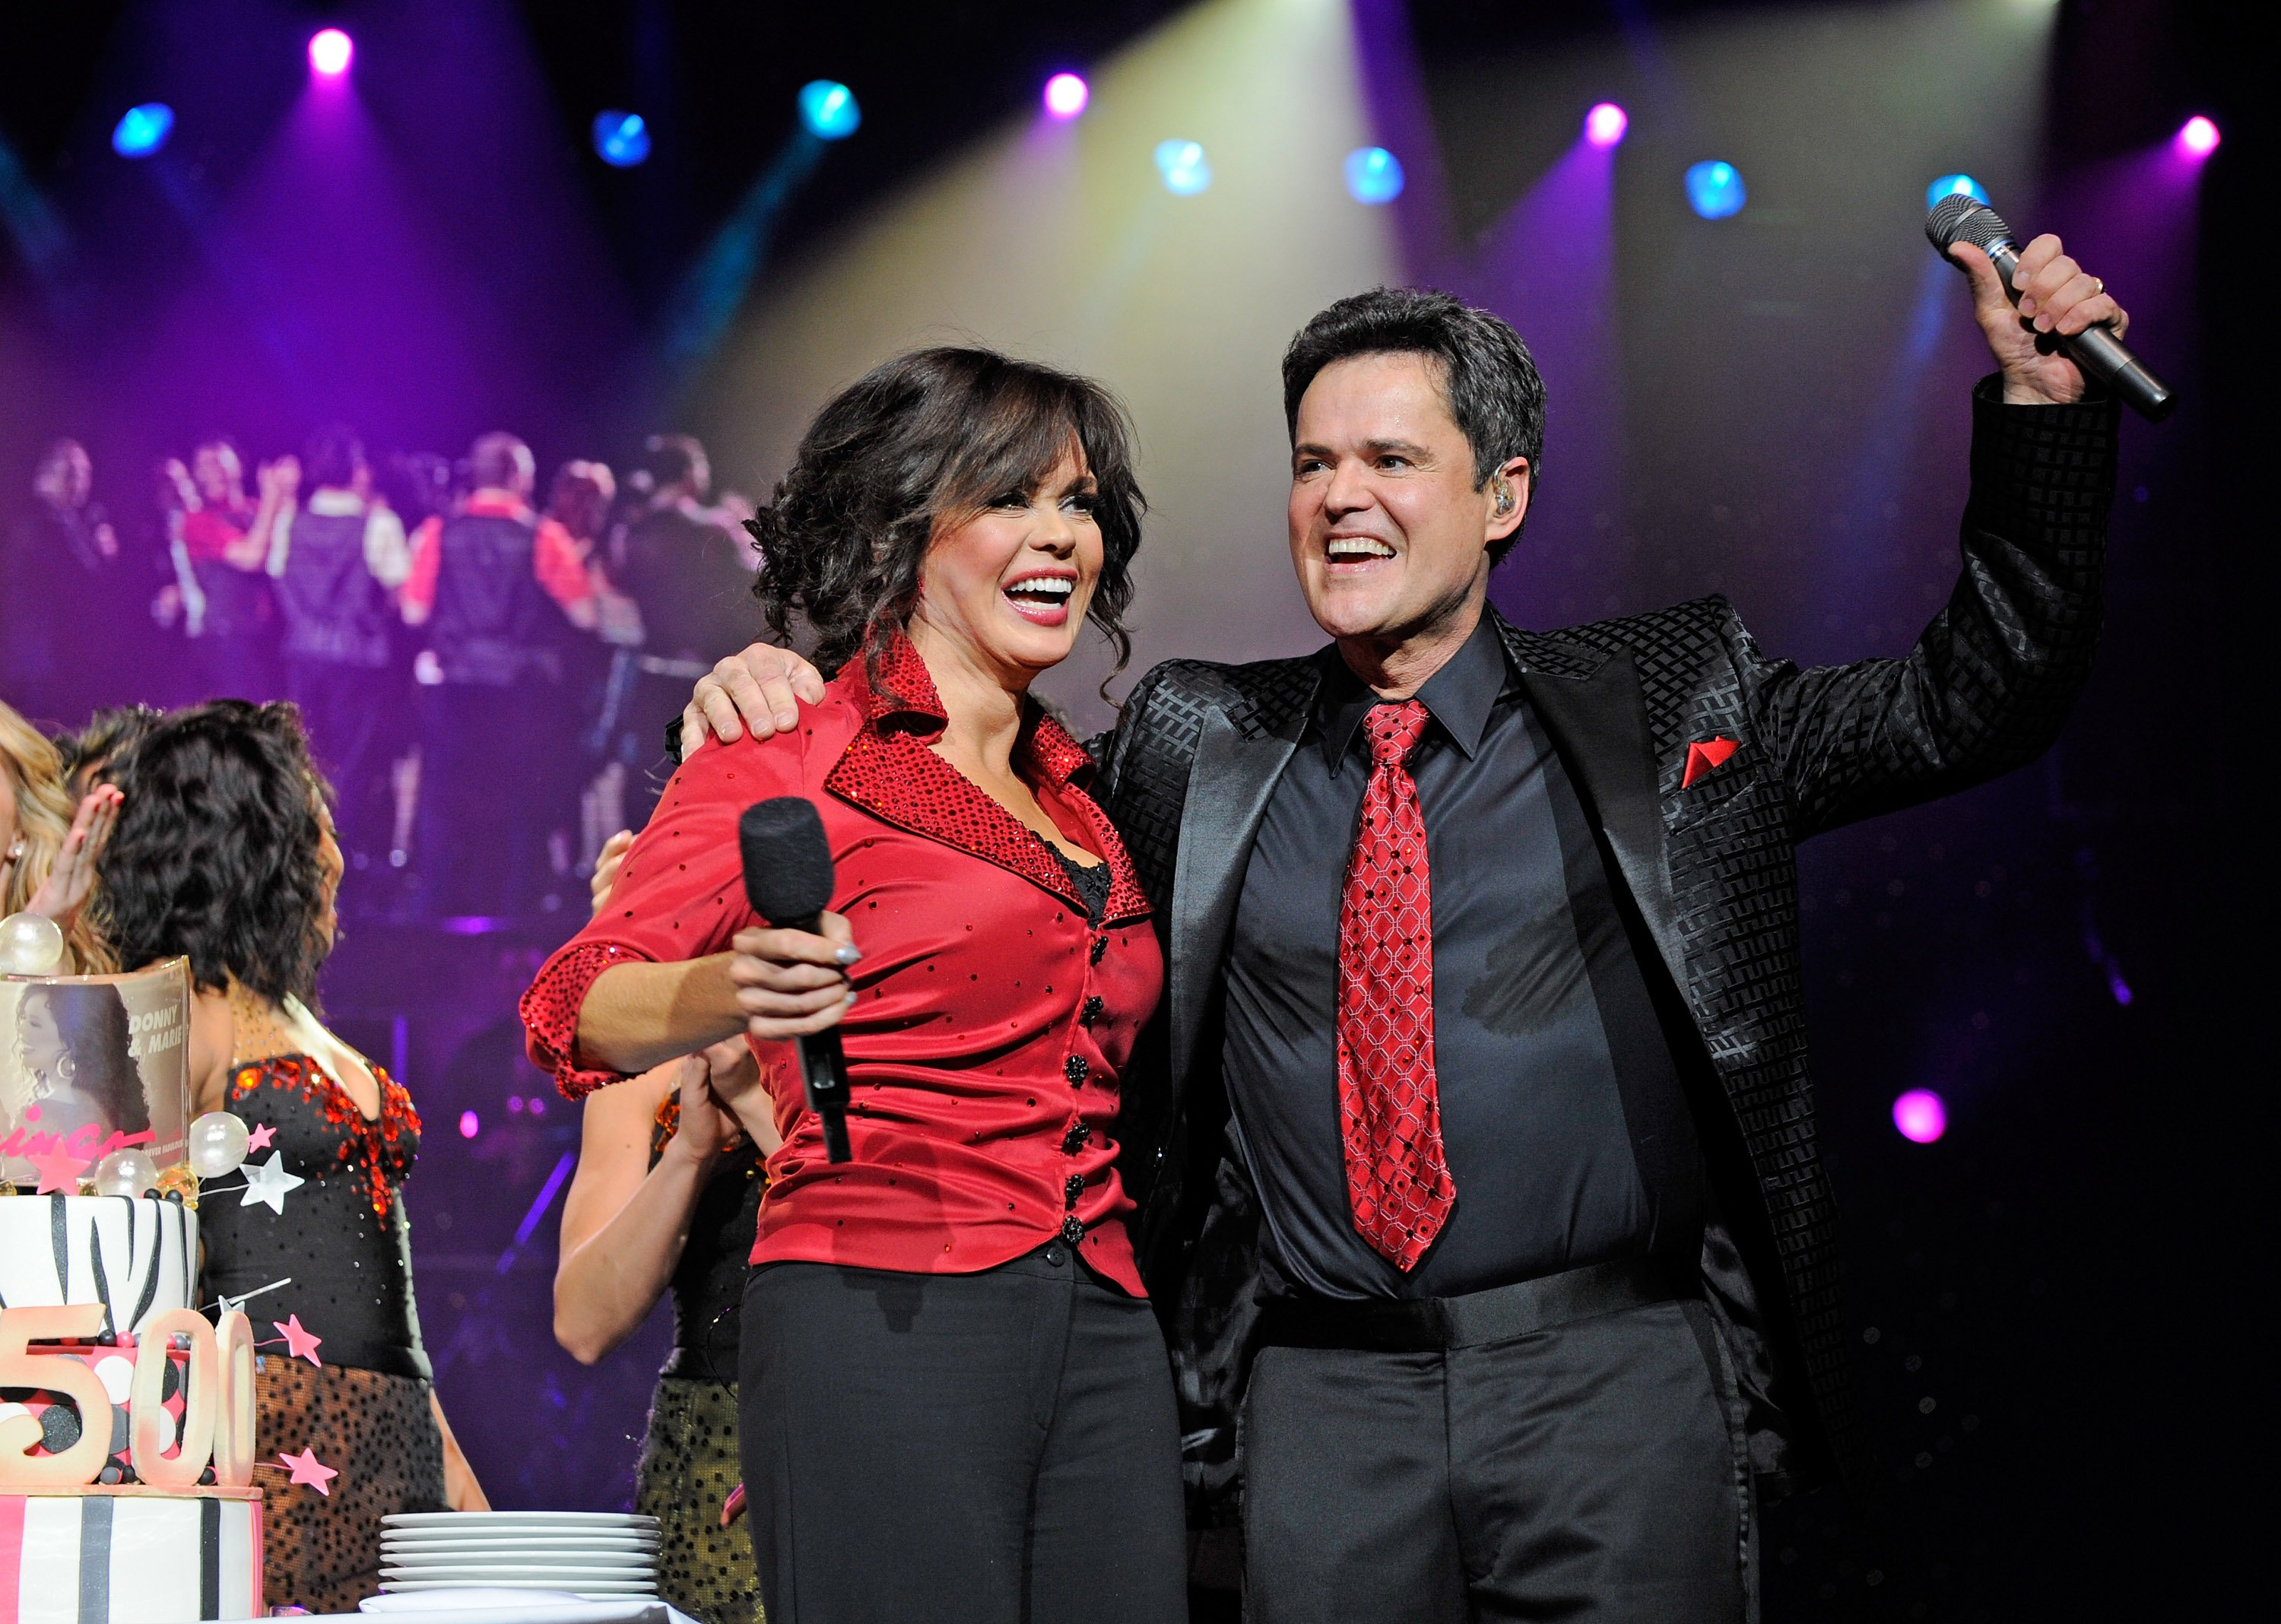 Image Credits: Getty Images / David Becker | Singers Marie Osmond and Donny Osmond celebrate after being presented a cake at the conclusion of their 500th Donnie & Marie variety show at the Flamingo Las Vegas March 23, 2011 in Las Vegas, Nevada.